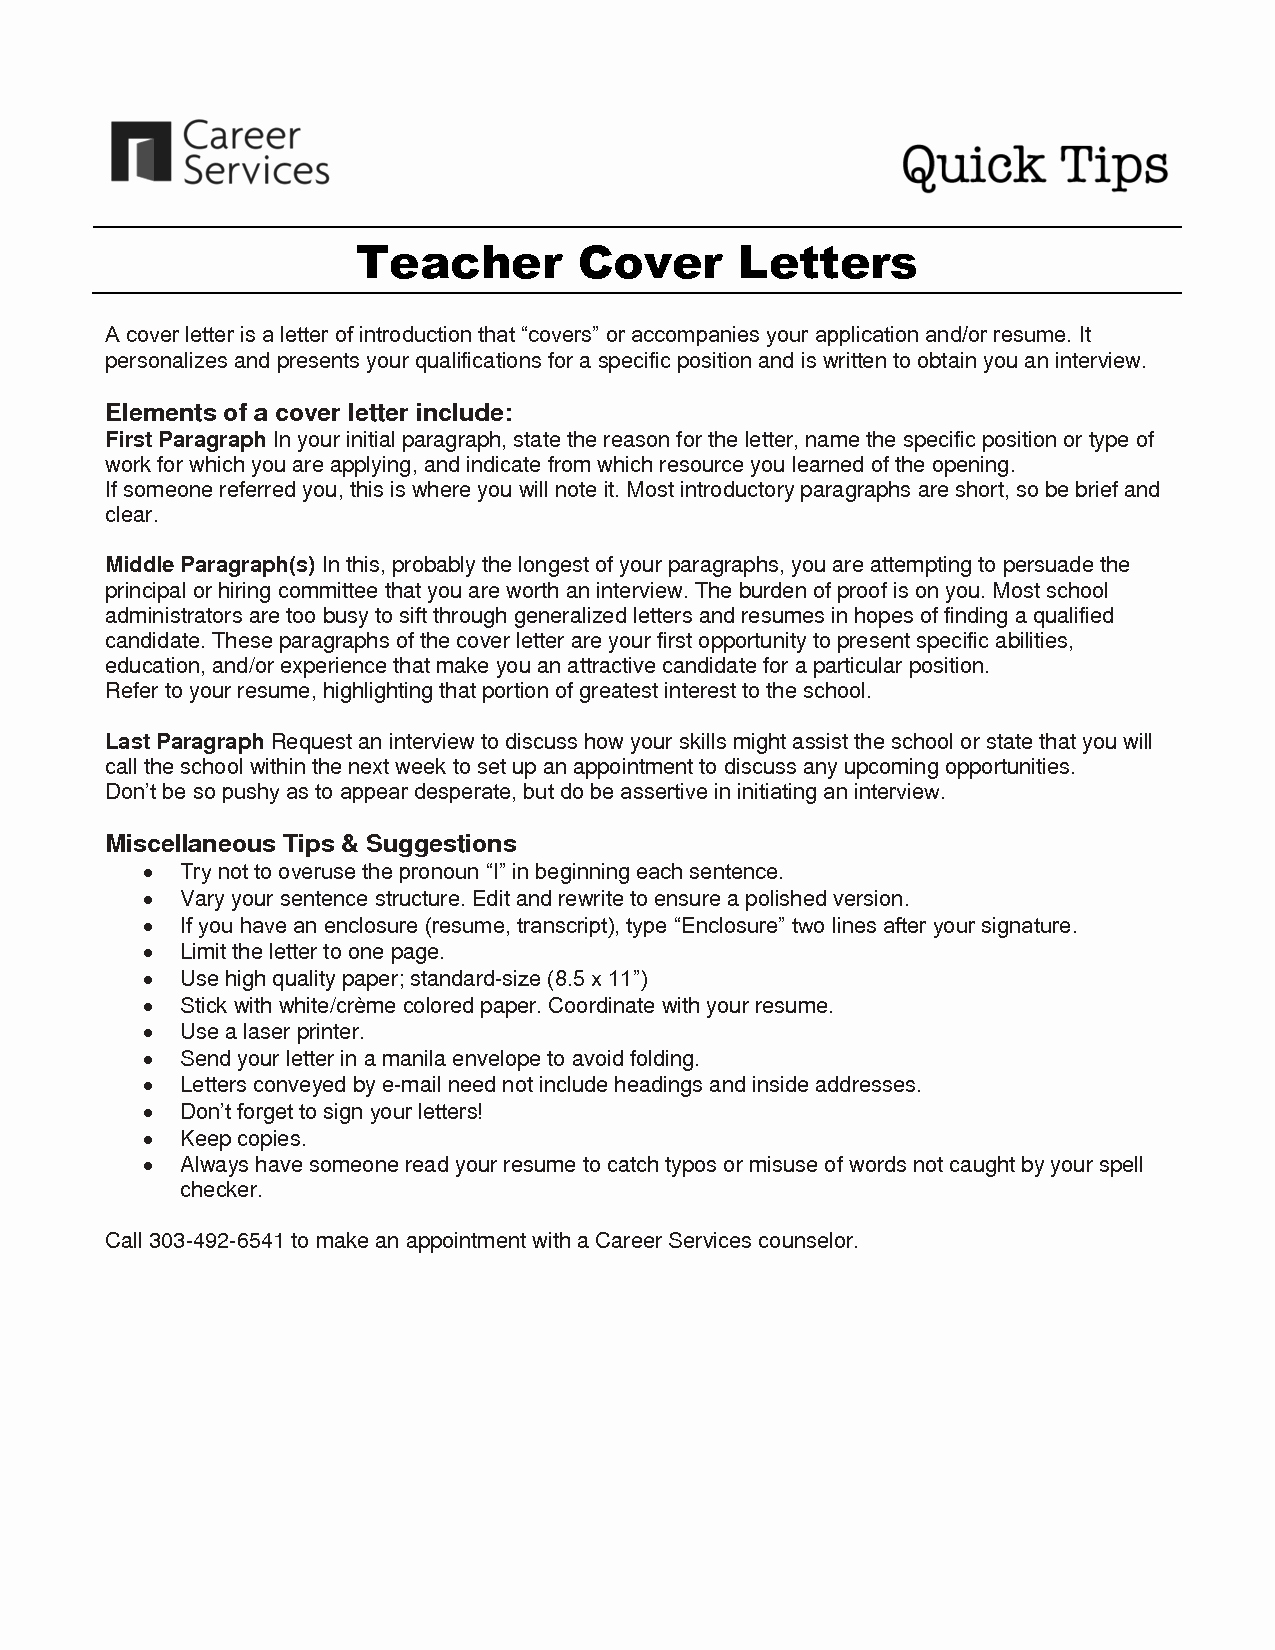 Cover Letter for Teaching Position Lovely Pin by Lynn King On Advice